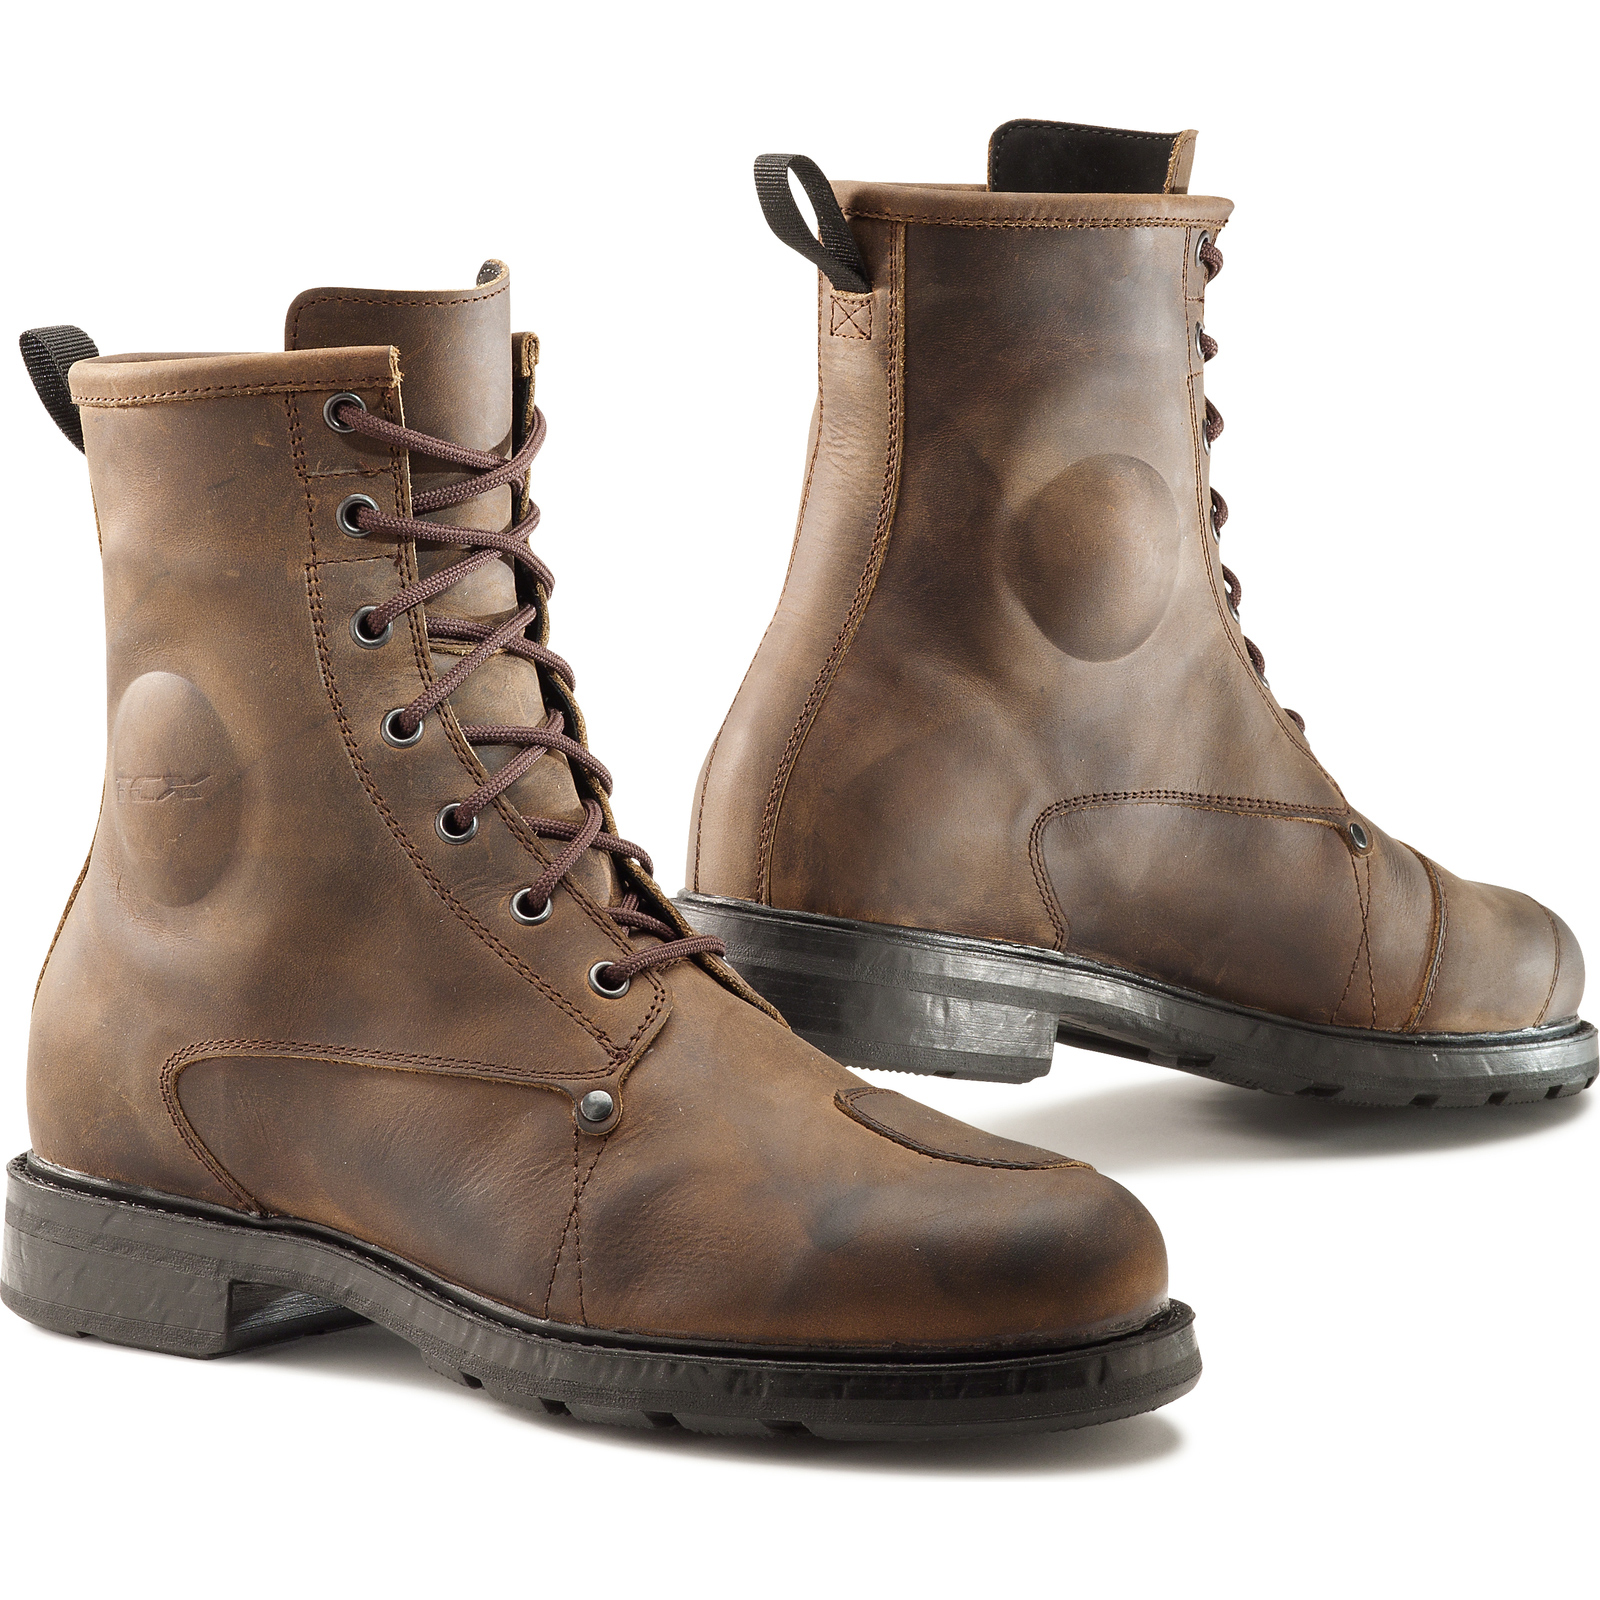 tcx x blend wp motorcycle boots waterproof vintage leather